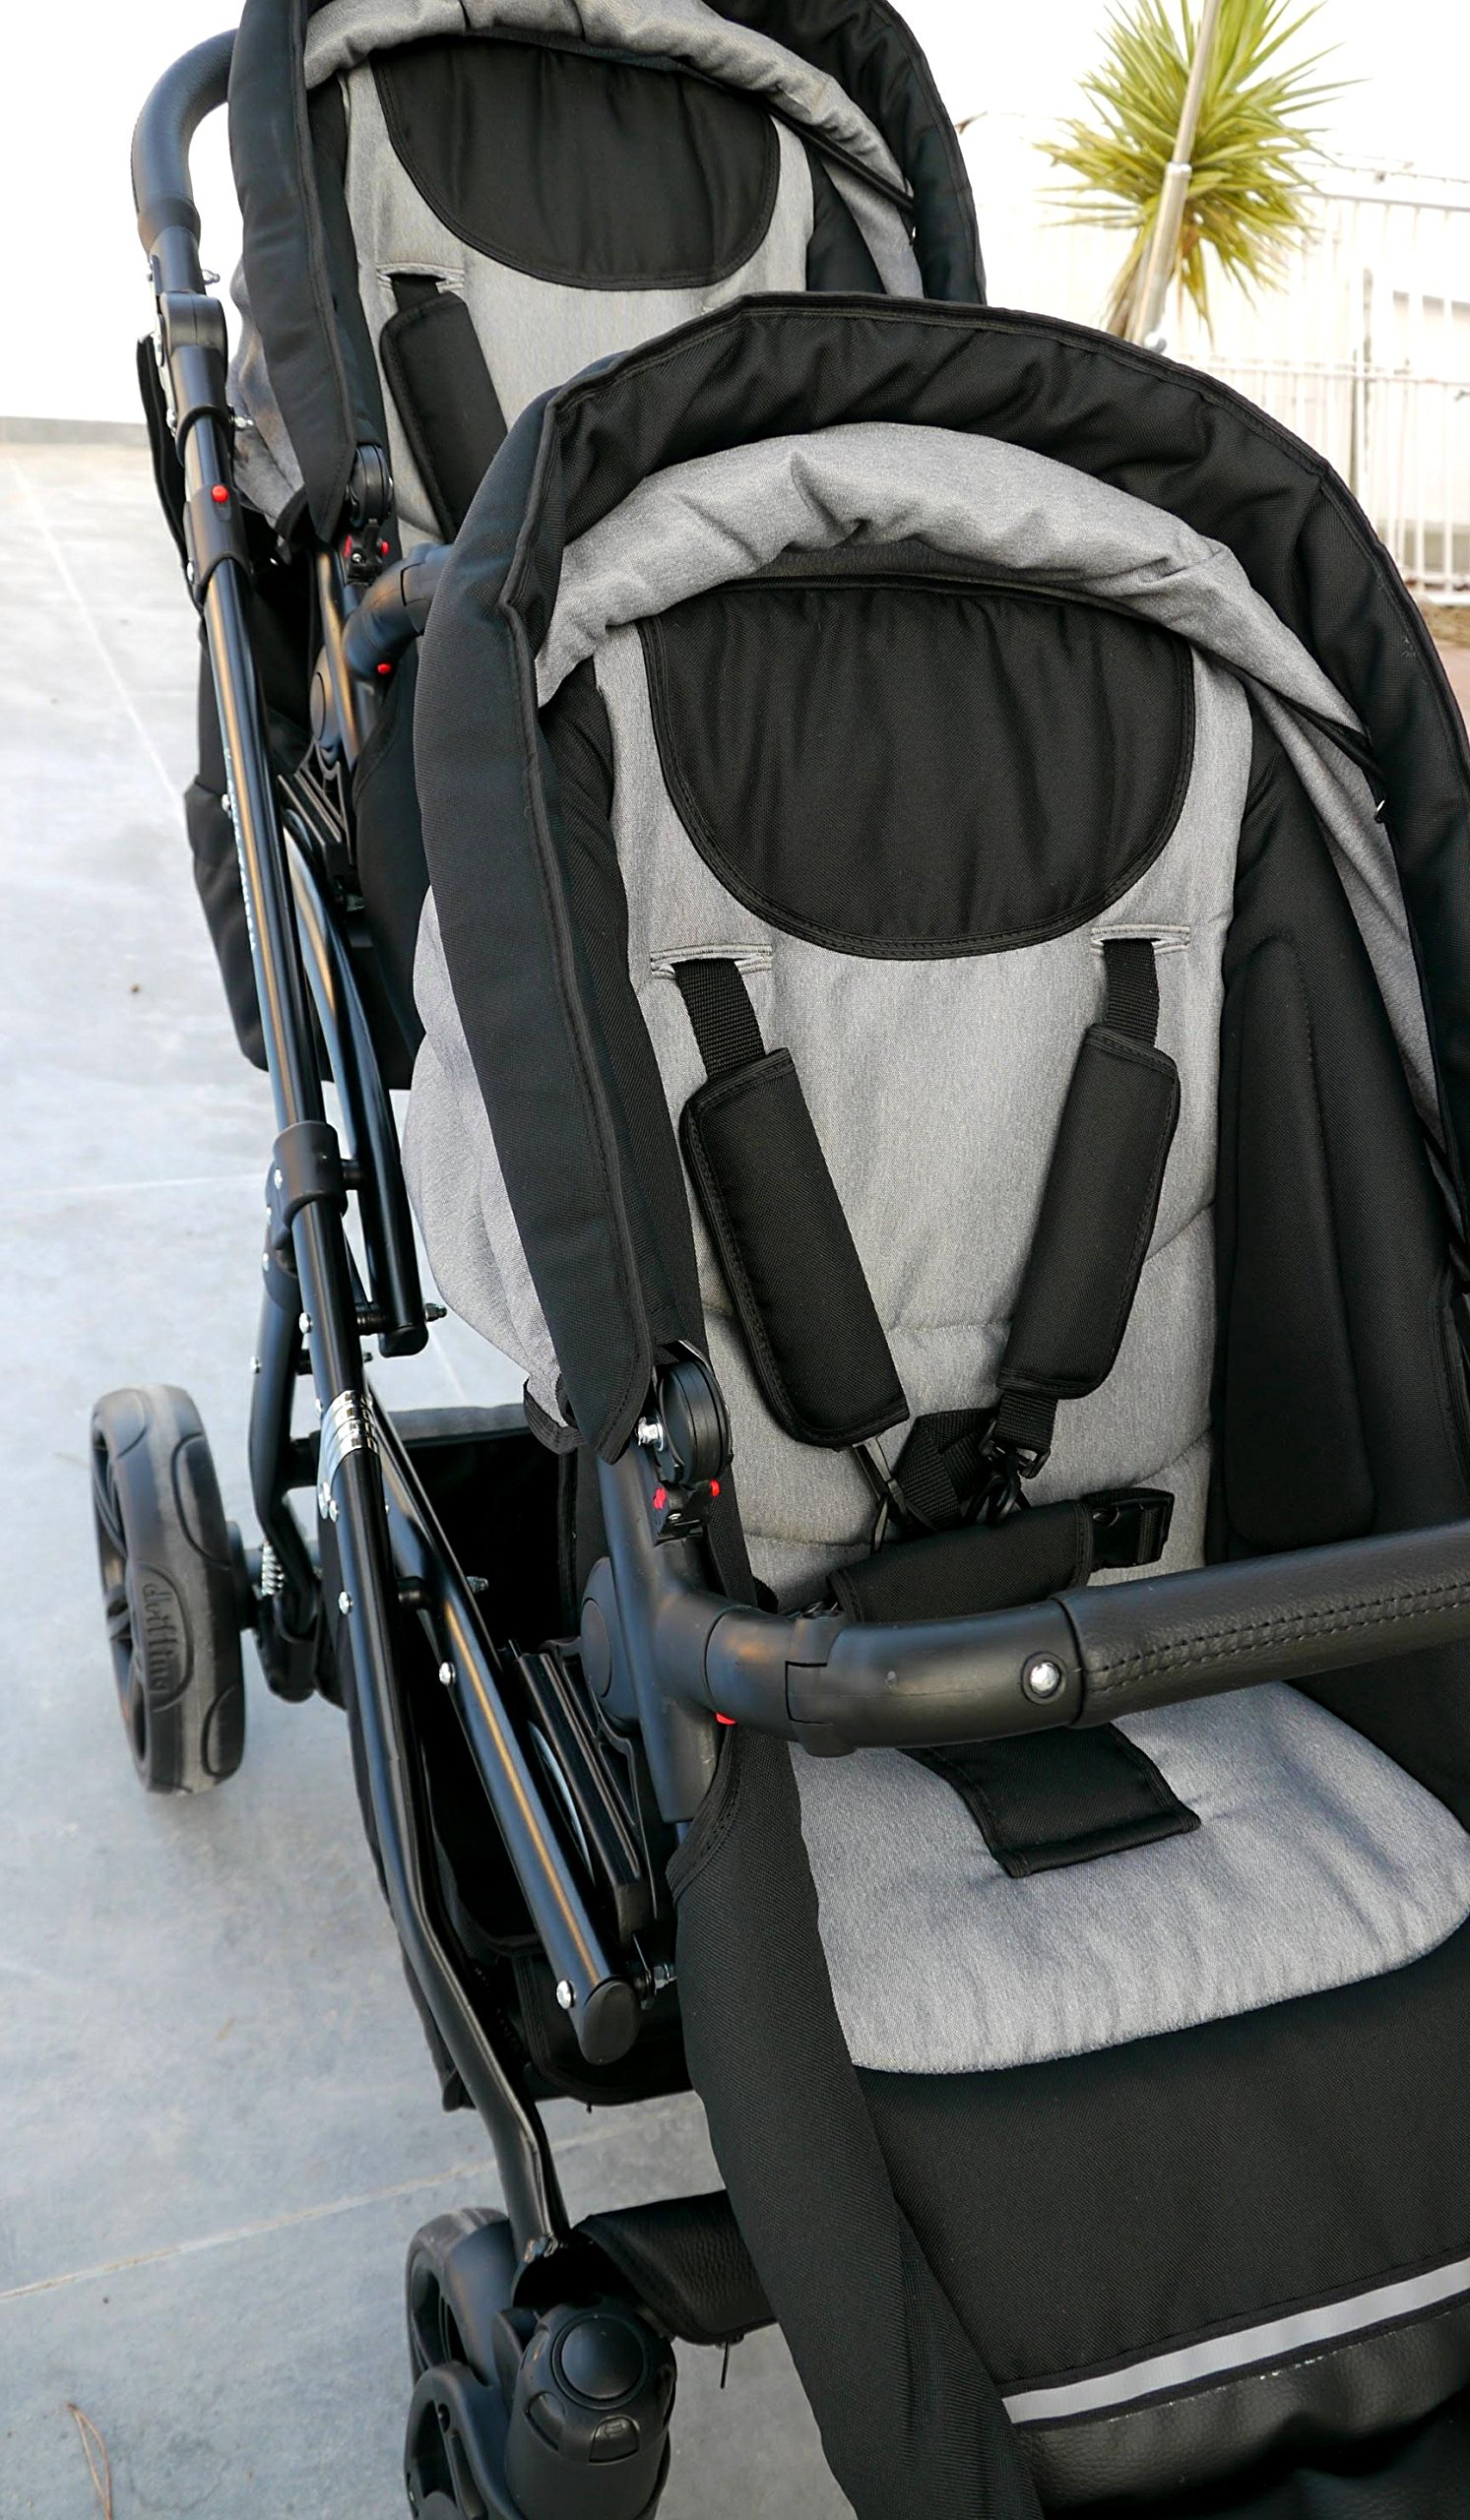 Double pram for twins. 2 carrycots + 2 buggies + 2 car seats. Grey. BBtwin Berber Carlo Directly from the factory, warranty and advice. Made un the EU according to the regulations EN1888 and ECE44/04. Colour grey. Includes 2 carrycots, 2 buggy seats, 2 car seats, bag, 2 footcovers, 2 rain covers, 2 mosquito nets, lower basket. Features: lightweight aluminium frame, easy bending, adjustable handlebar, central brake, lockable front swivel wheels, shock absorbers, each buggy can be instaled independently in both directions, carrycots with a mattress and a washable cover, backrest adjustable in various positions, safety bar and harness of 5 points 8